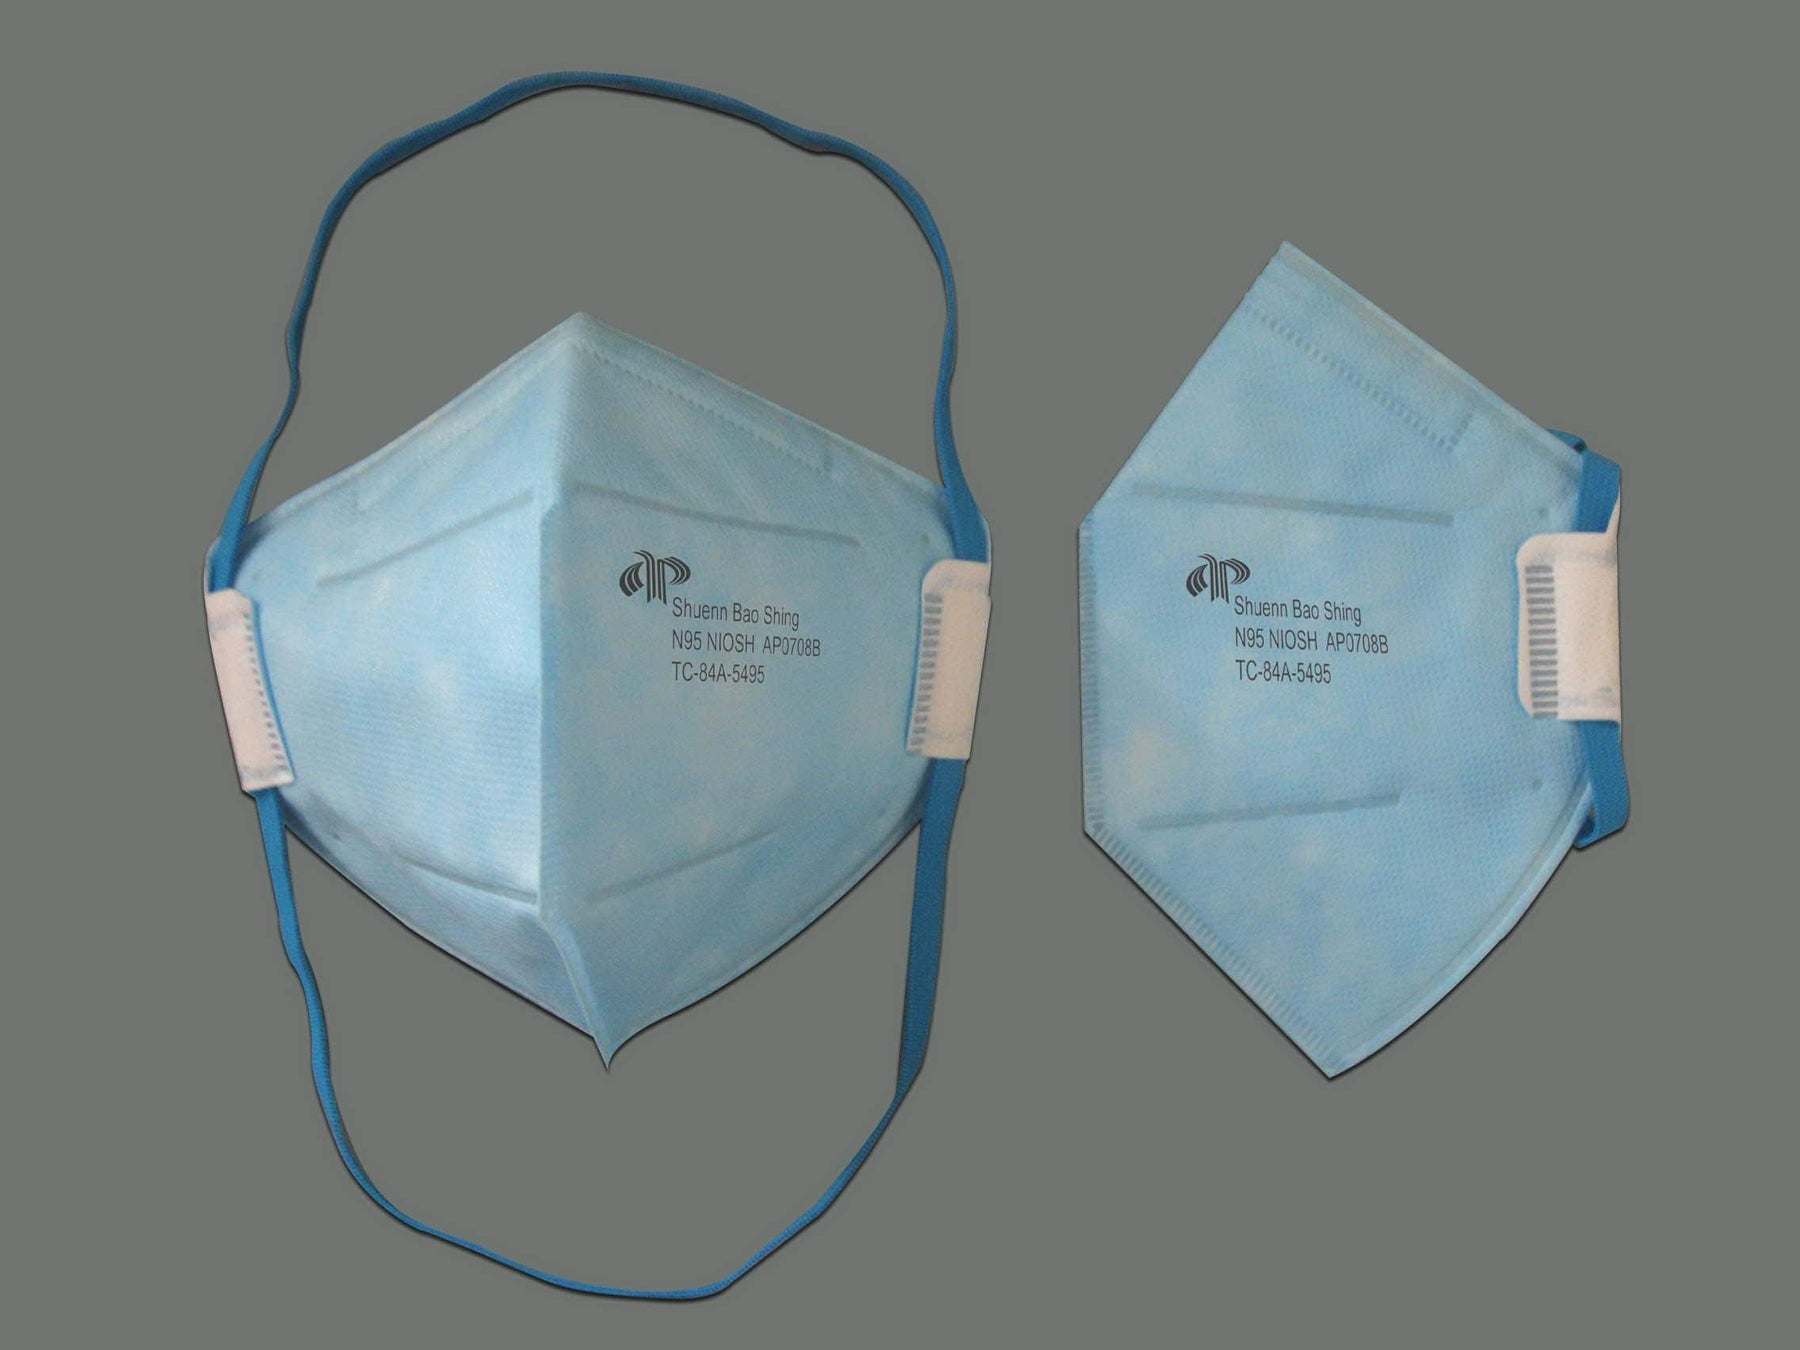 Authorized N95 Face Mask Respirators Updated: April 24, 2020